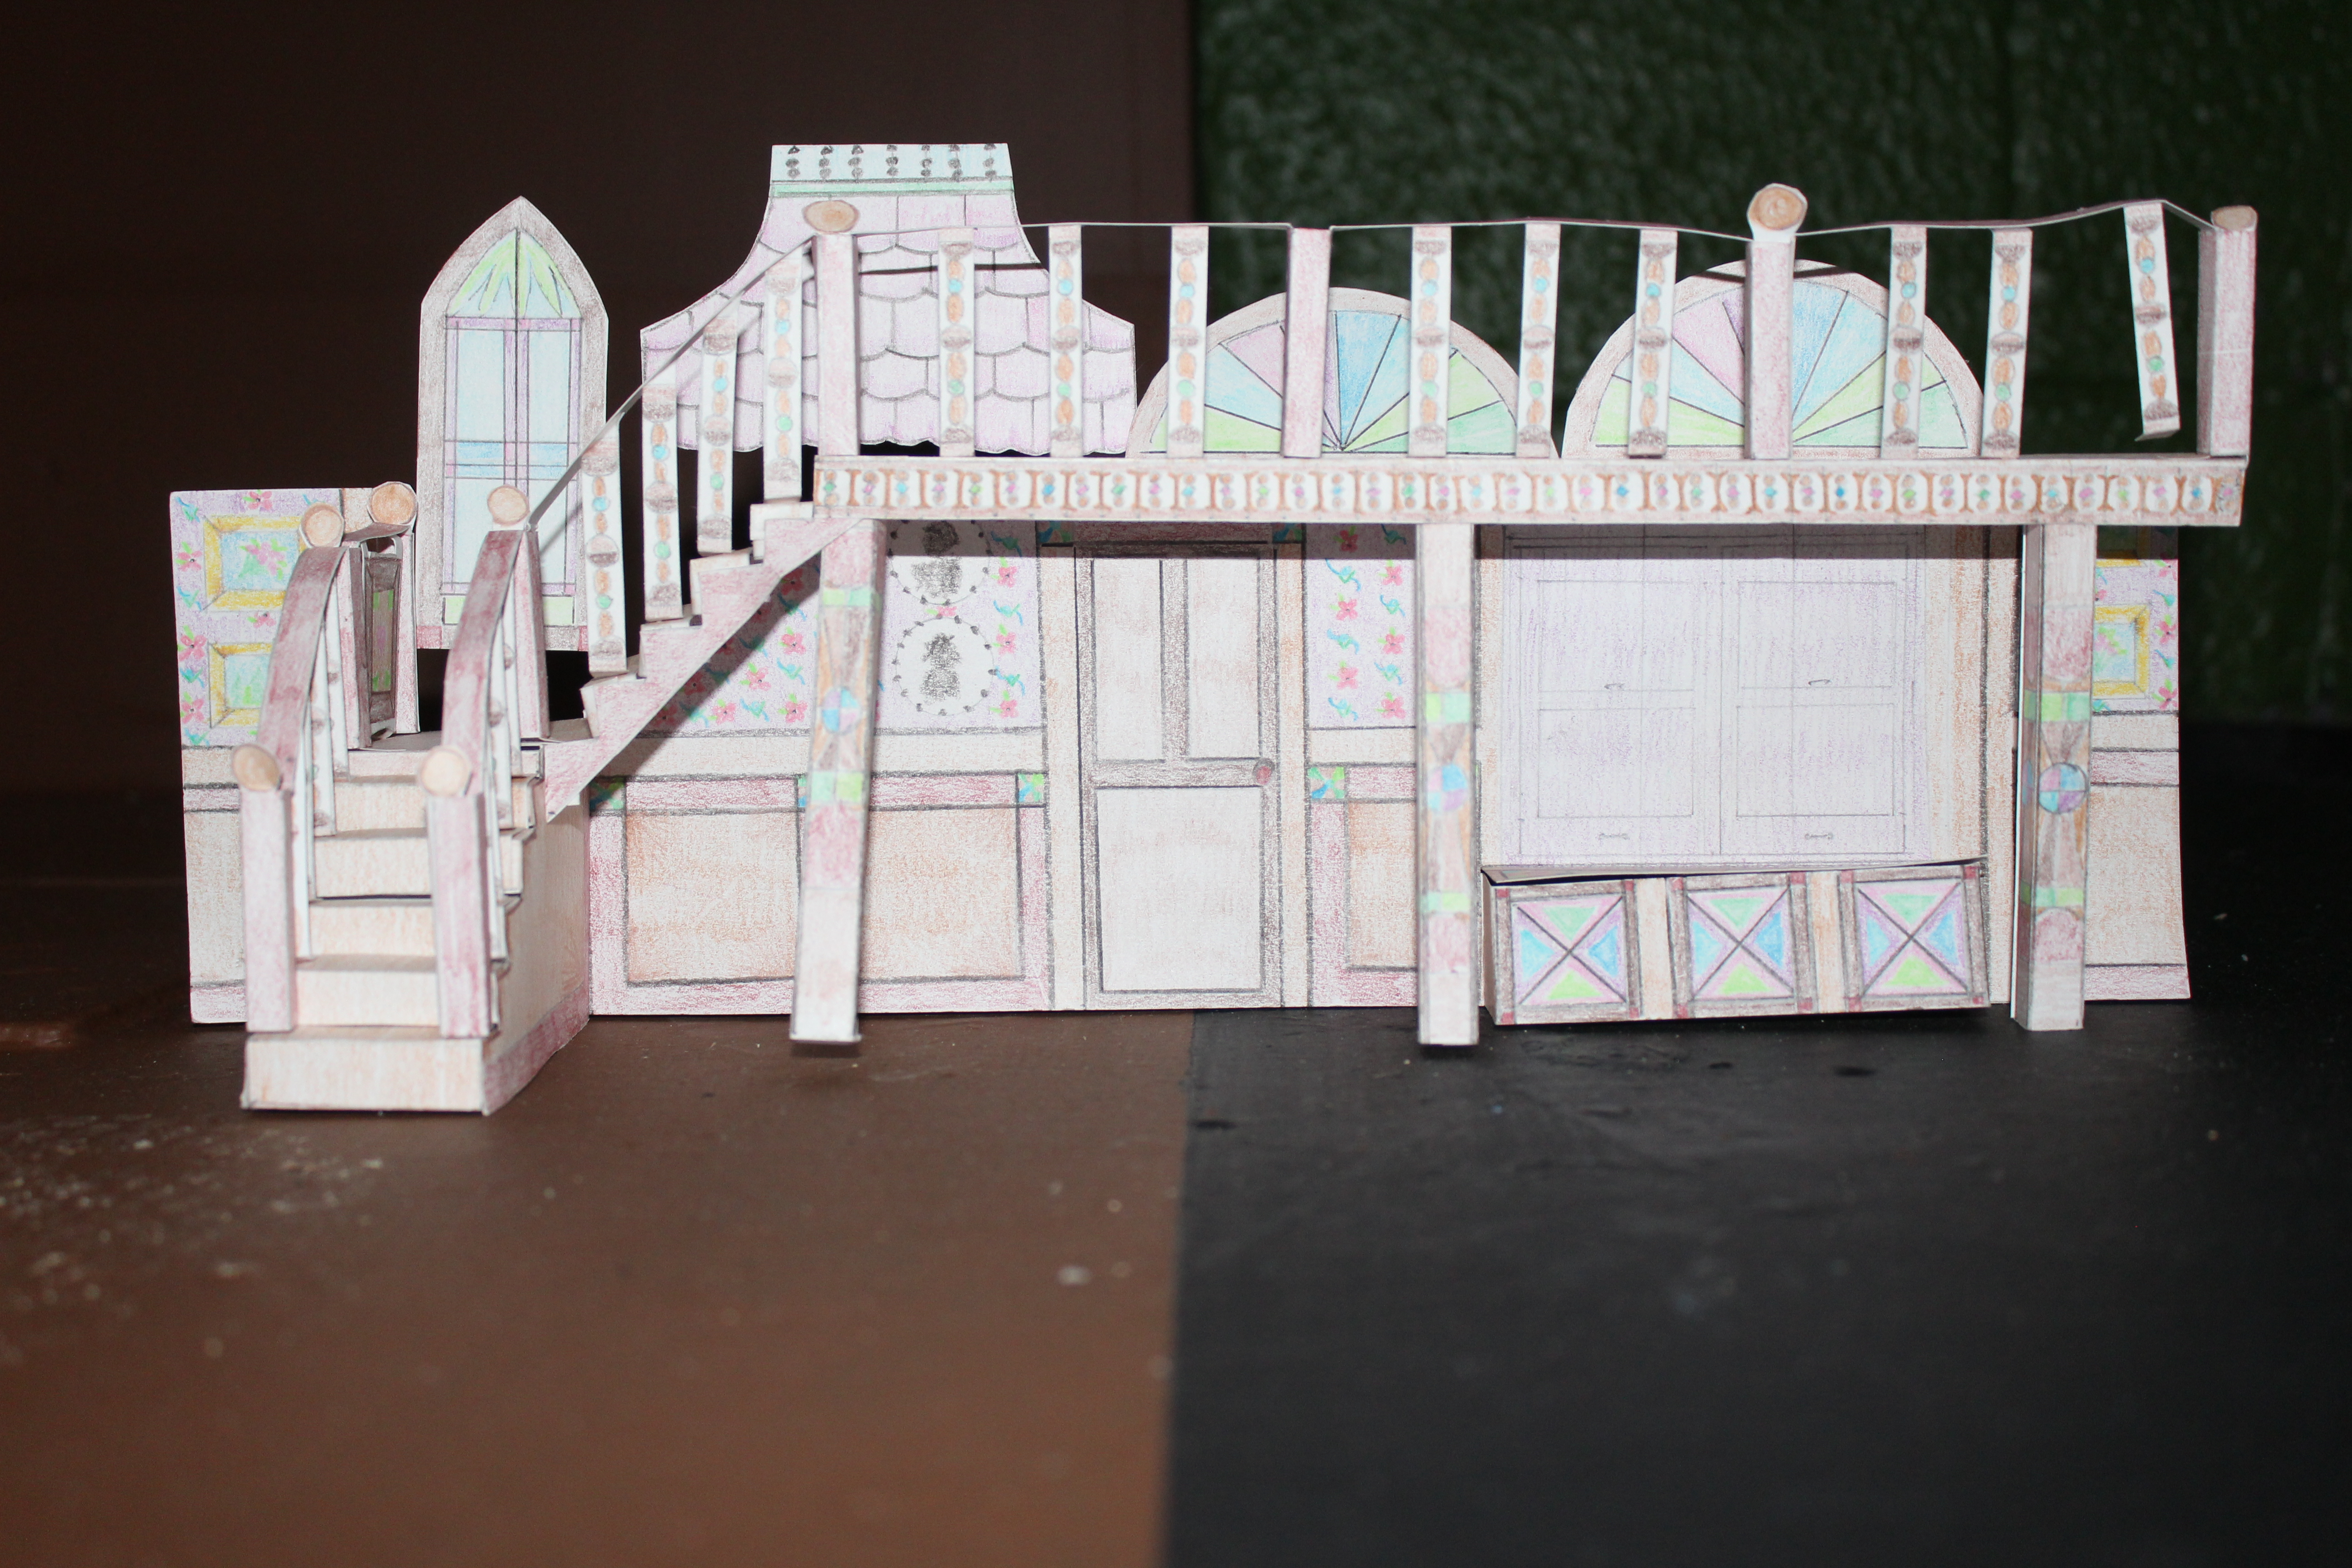 Model of set of Arsenic and Old Lace